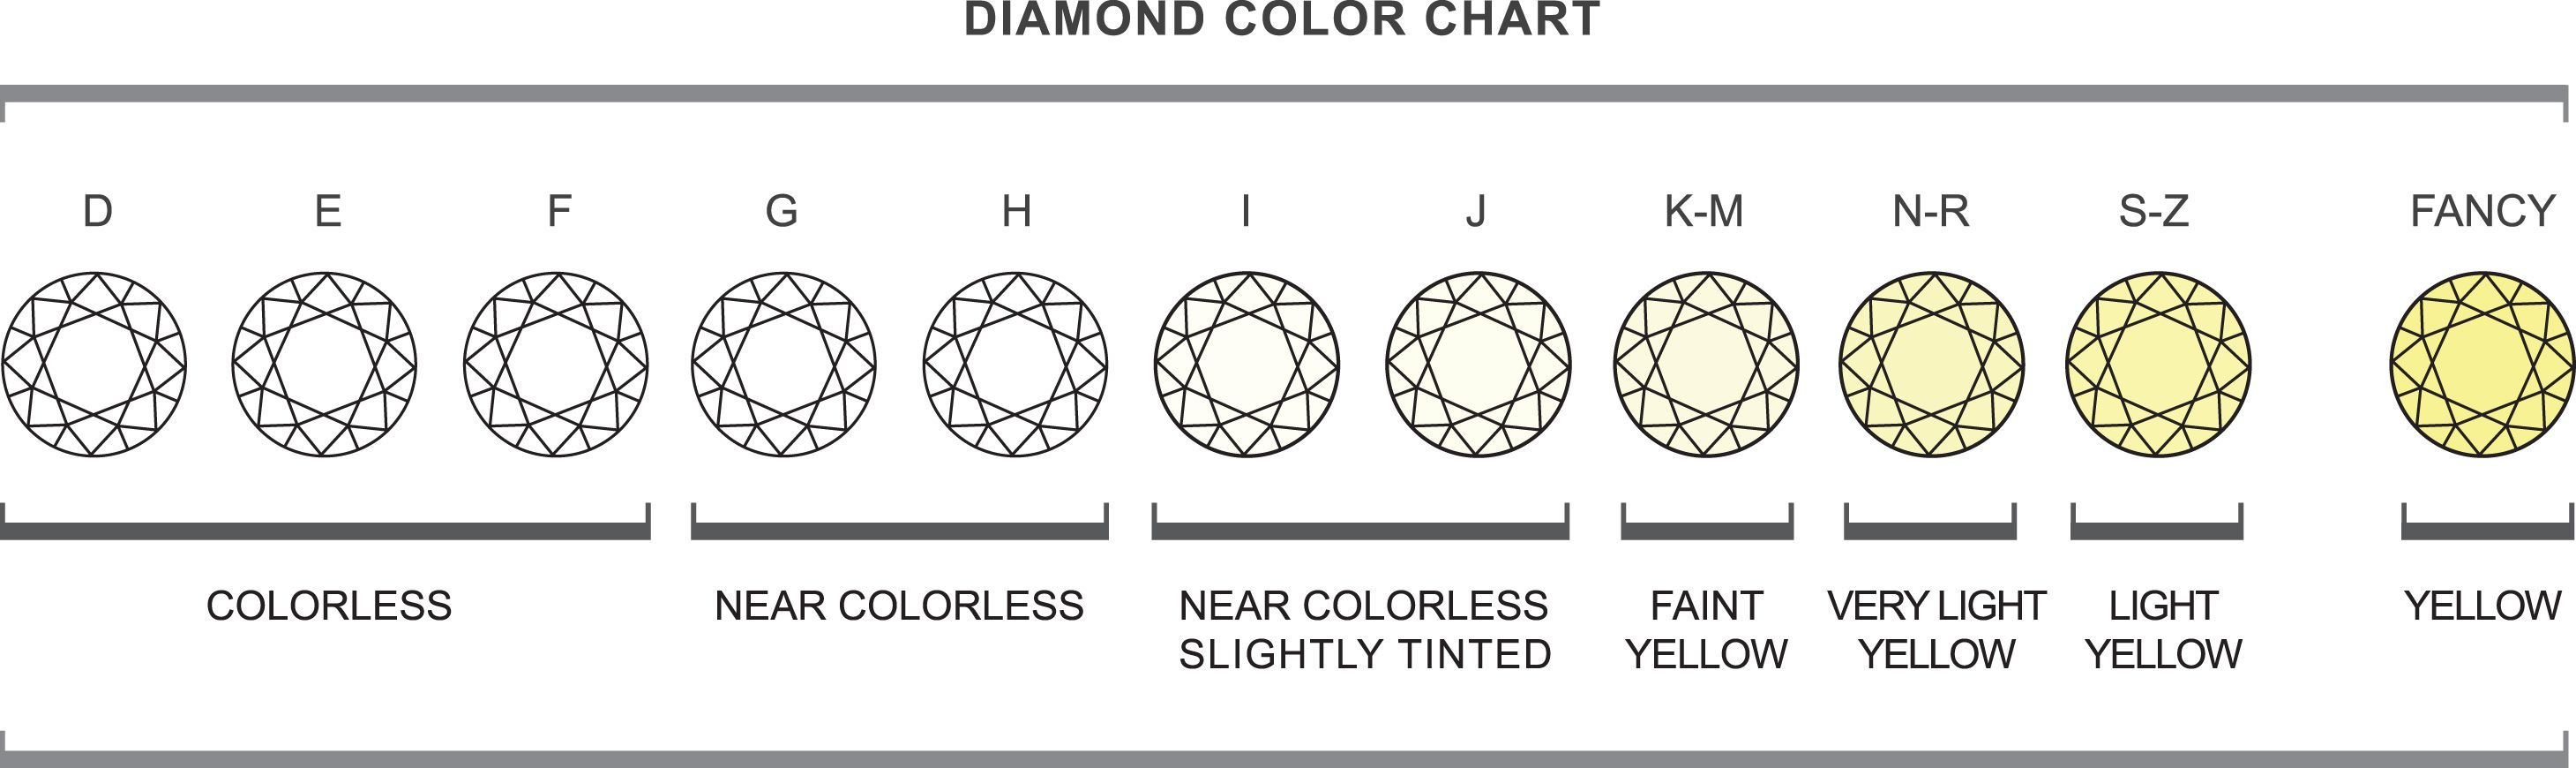 Diamond Color | Charts | Pinterest | Colors, Color charts and Charts